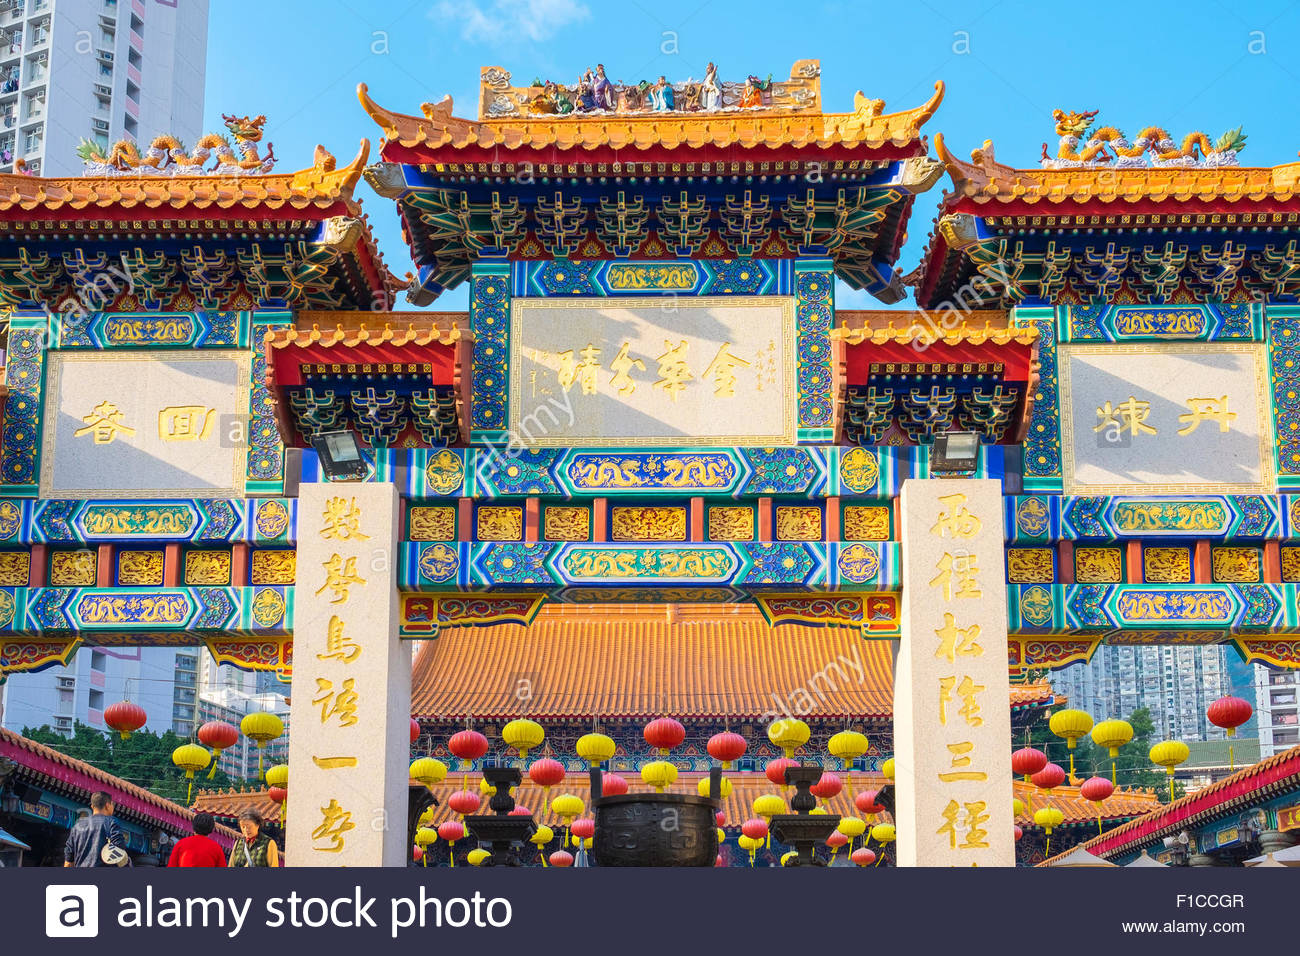 Gate in front of main altar at Wong Tai Sin (Sik Sik Yuen) Temple, Wong Tai Sin district, Kowloon, Hong Kong, China - Stock Image